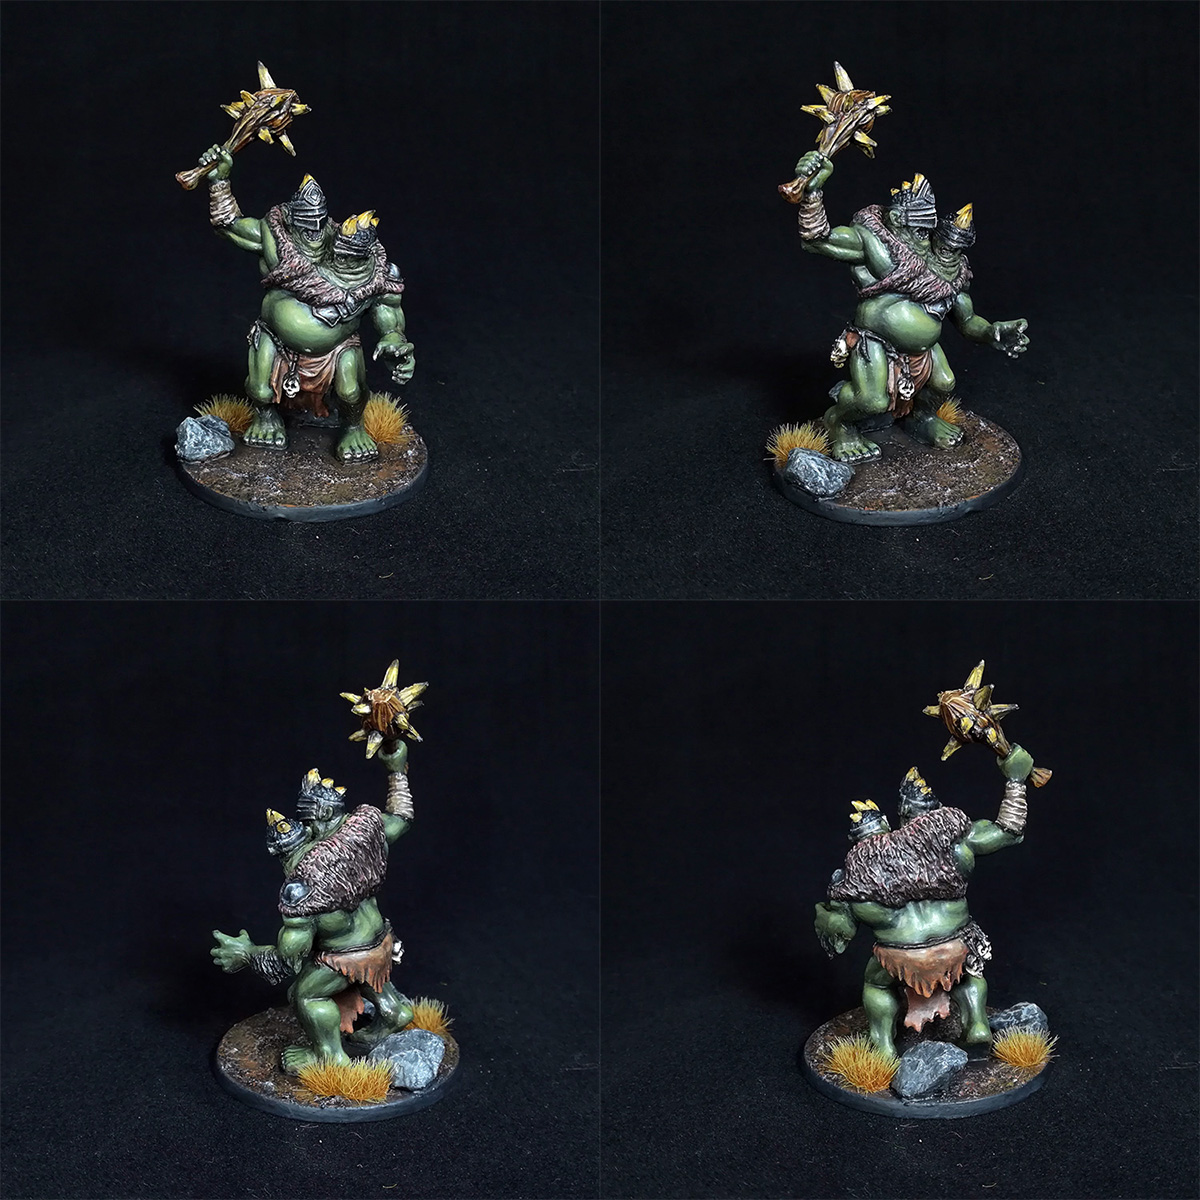 Descent Miniature Ettin